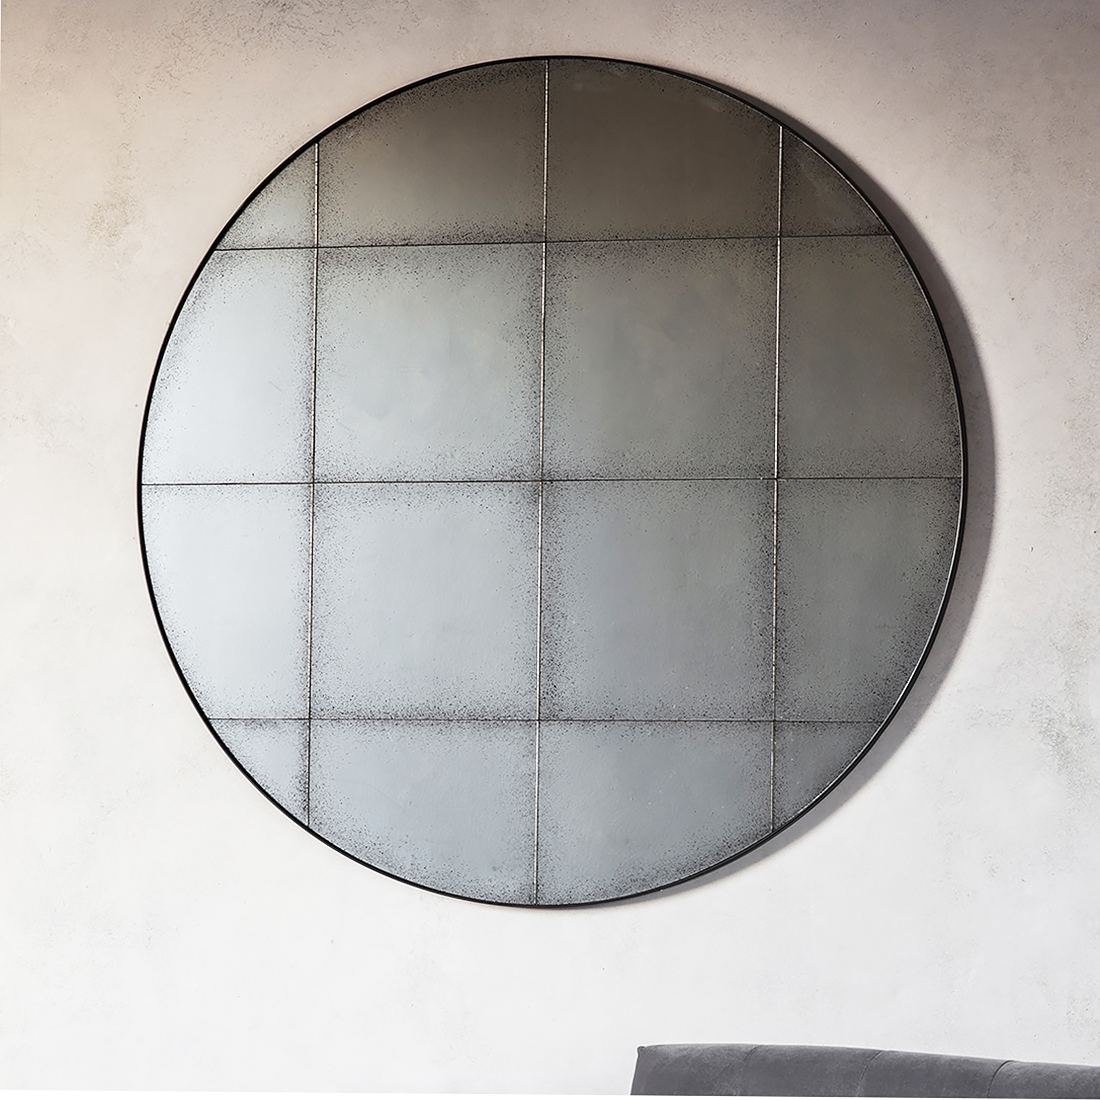 Popular Black Round Vintage Glass Wall Mirror For Large Round Wall Mirrors (View 18 of 20)